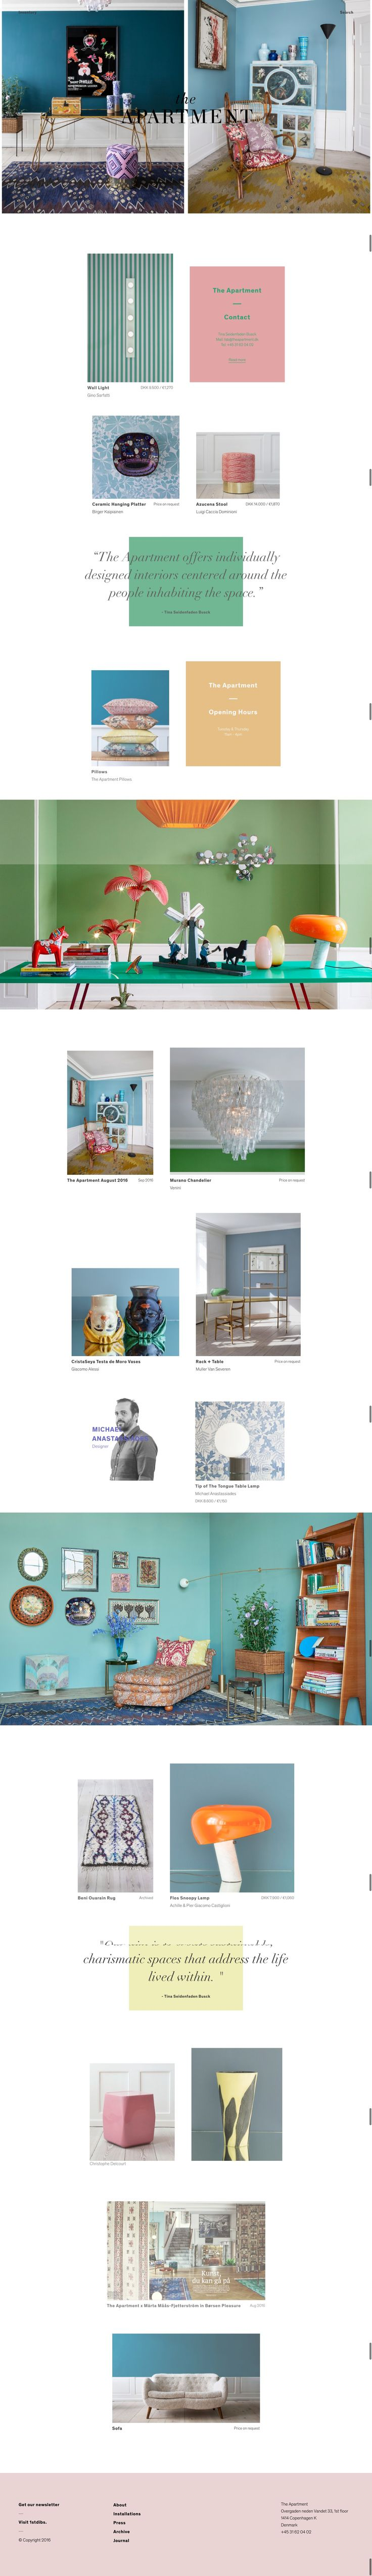 The Apartment #WebDesing